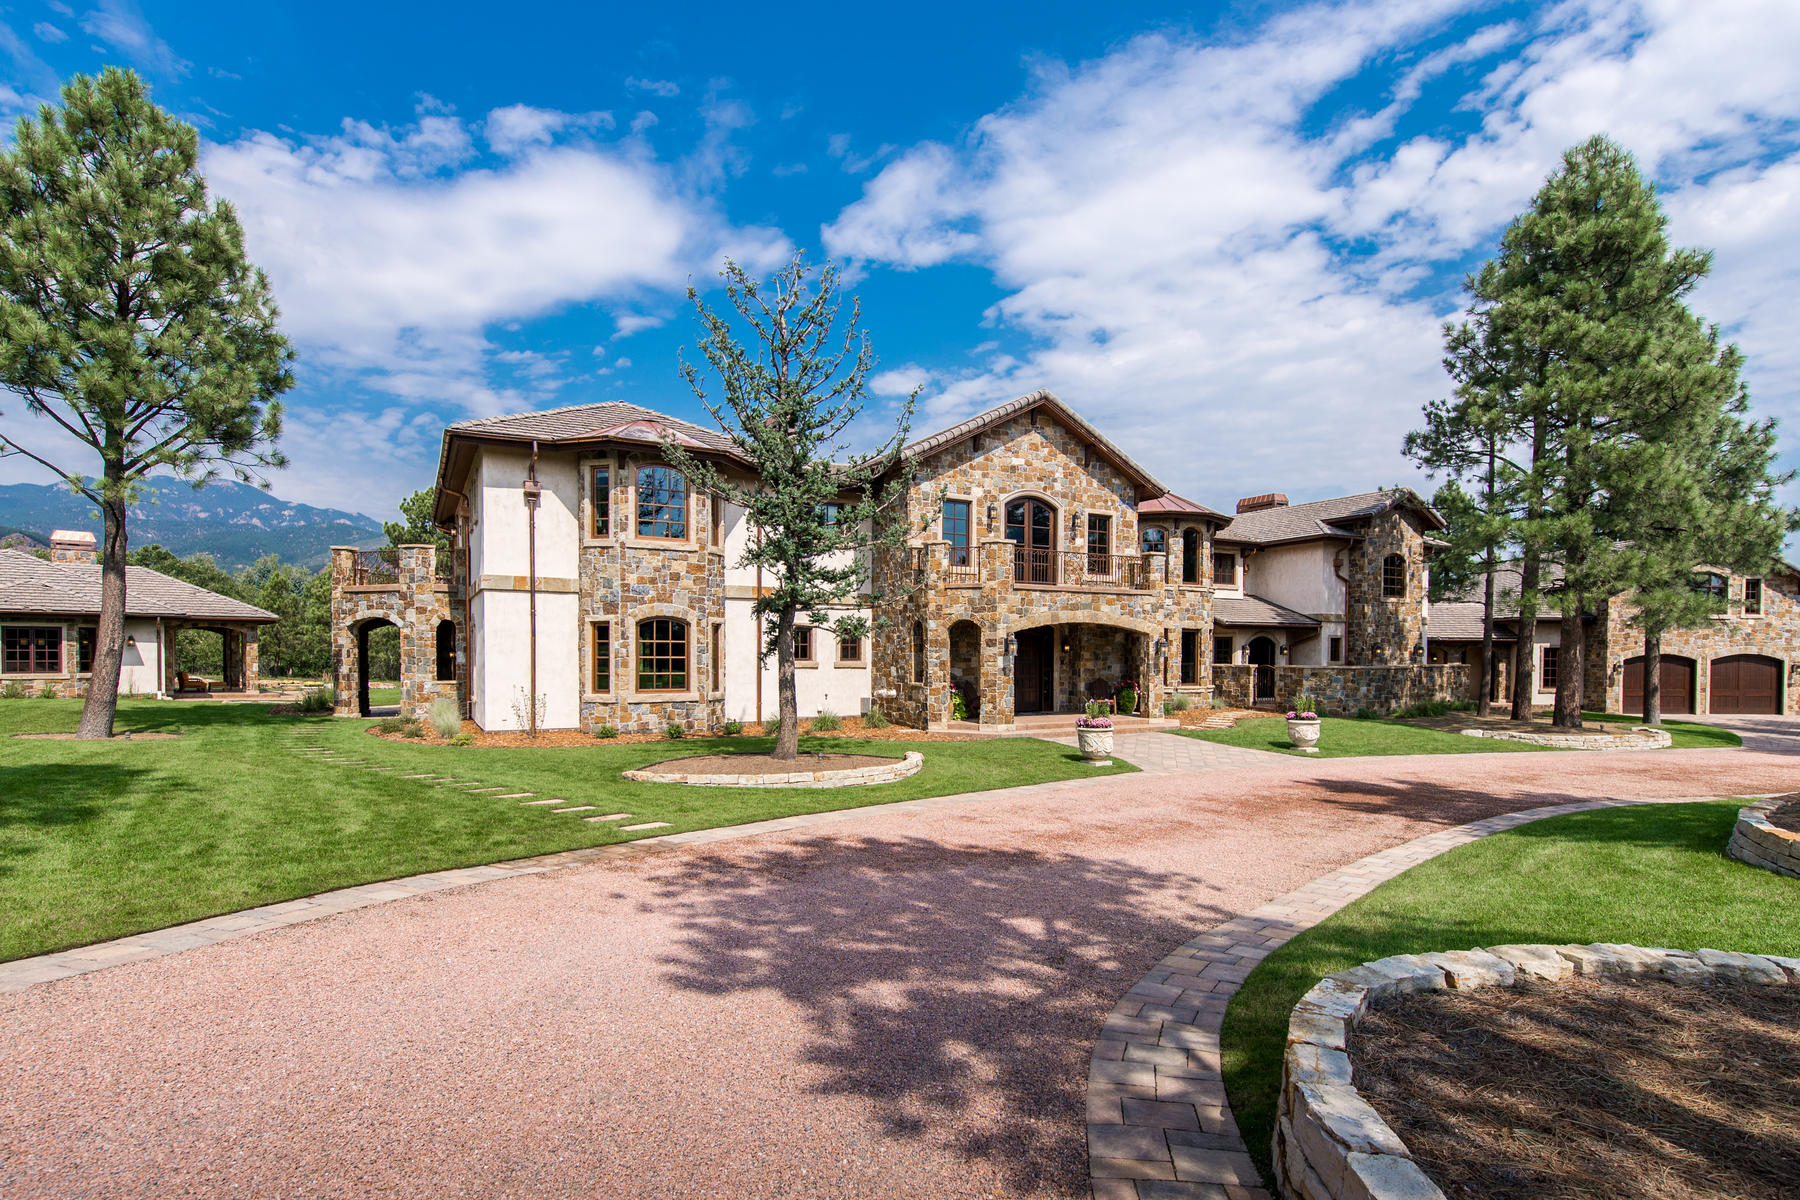 Single Family Home for Active at The most spectacular home in Colorado Springs! 22 Crossland Rd Colorado Springs, Colorado 80906 United States